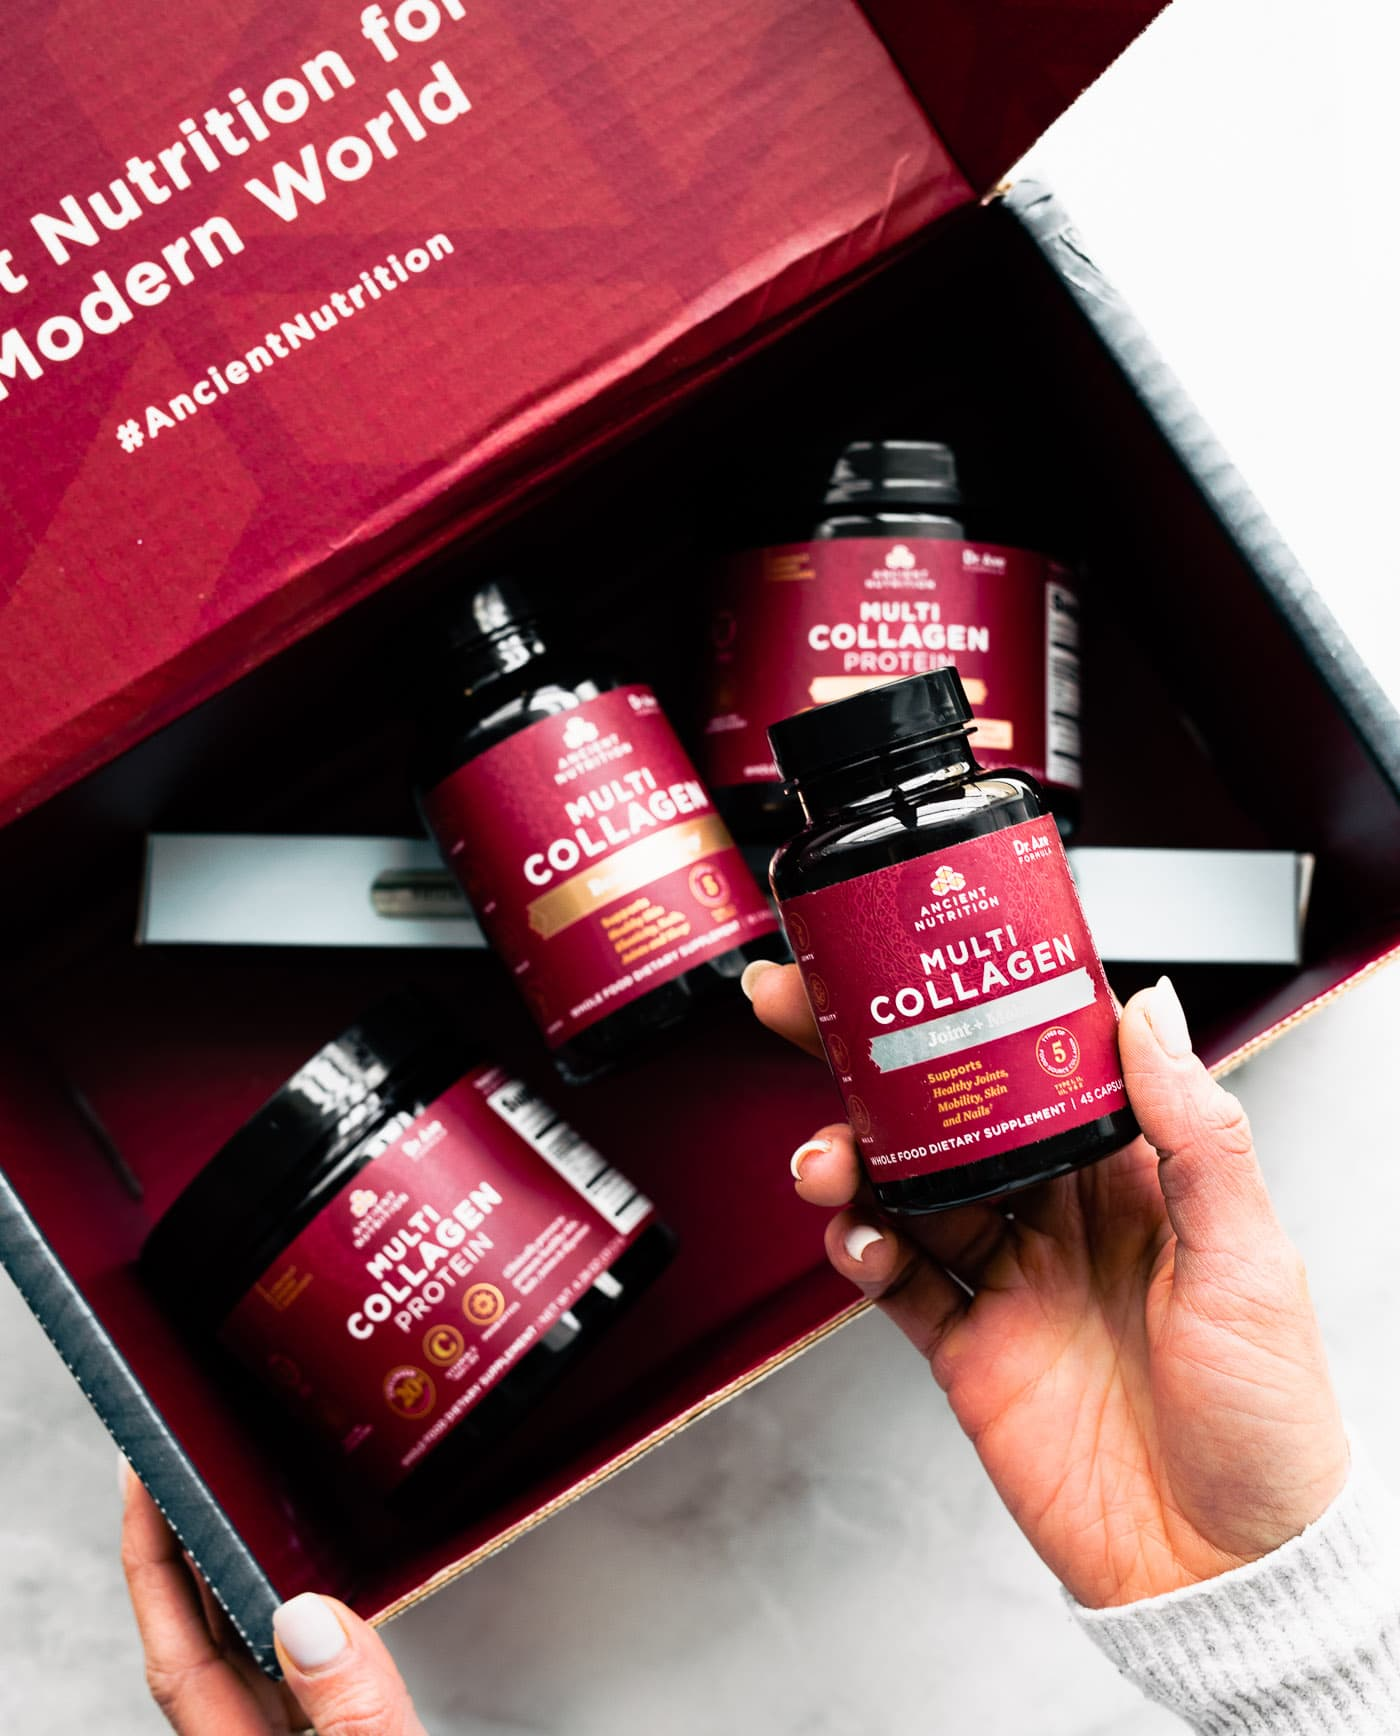 bottles of Ancient Nutrition brand multi collagen protein products